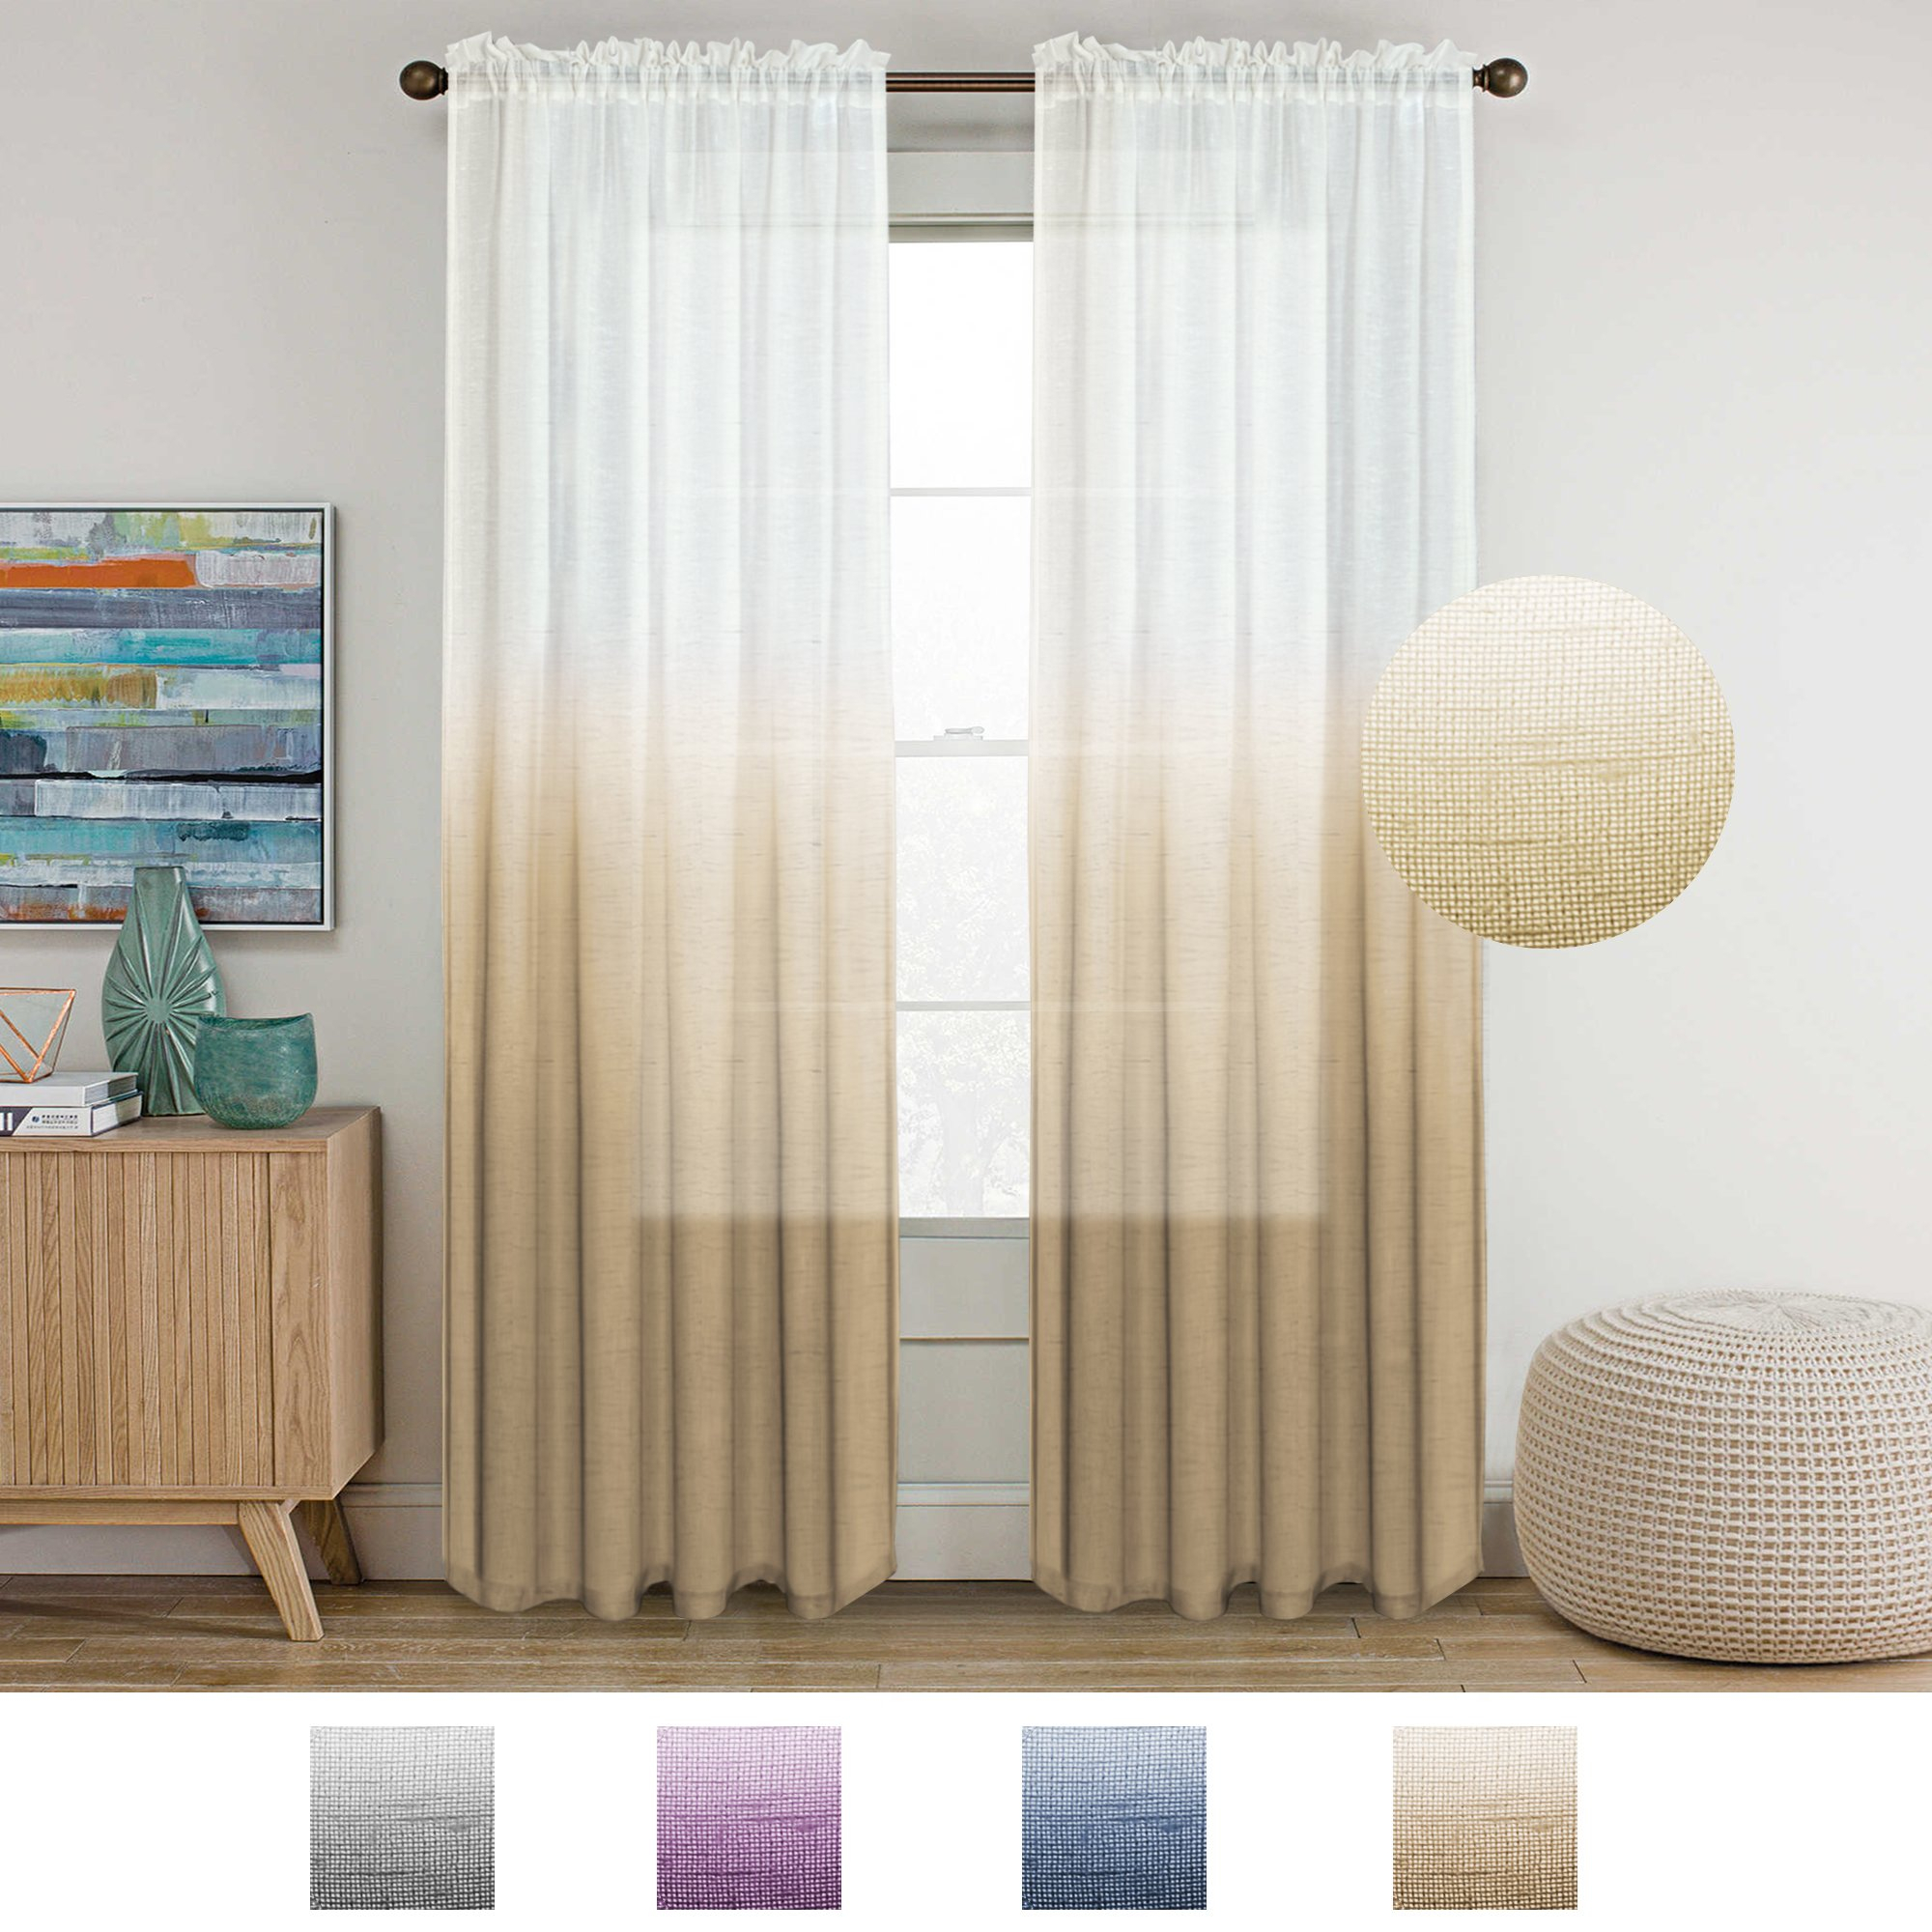 Cheap Natural Linen Sheer Curtains, Find Natural Linen Sheer Intended For Elegant Comfort Window Sheer Curtain Panel Pairs (View 19 of 20)